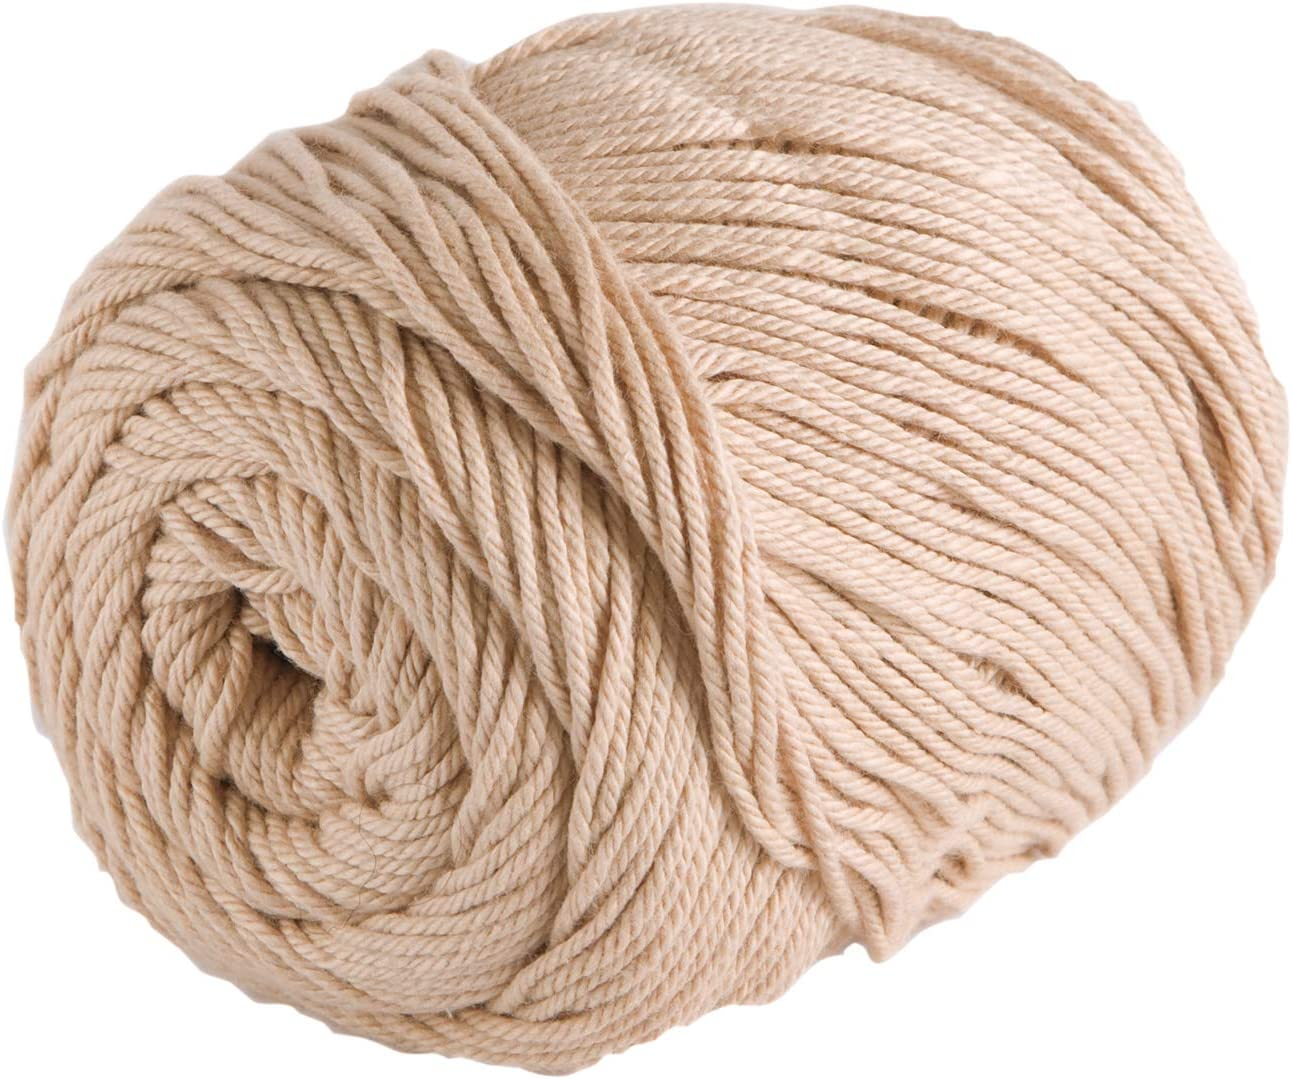 Knit Challenge the lowest price Picks Dishie Worsted Weight 100% Max 78% OFF Linen 100 Cotton - g Yarn